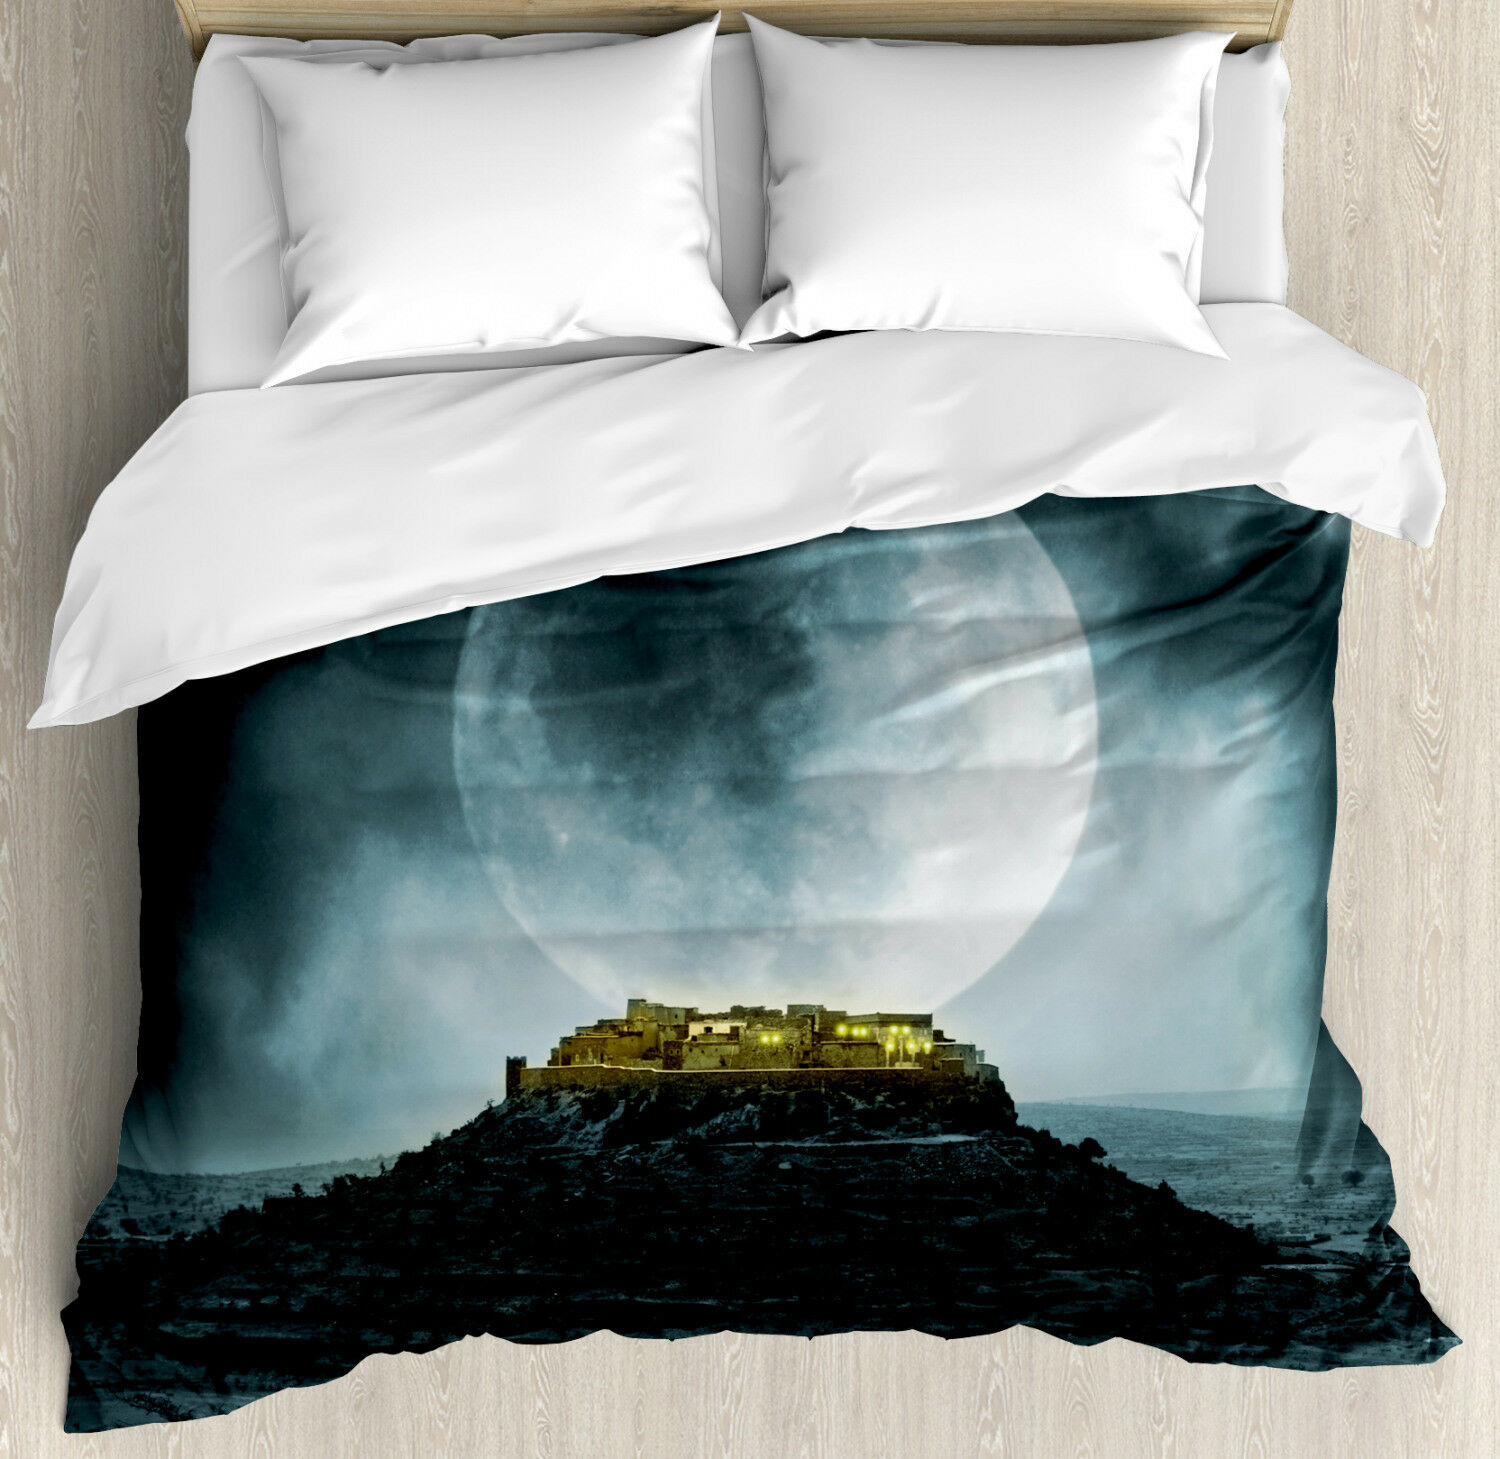 Night Sky Duvet Cover Set with Pillow Shams Full Moon and Castle Print